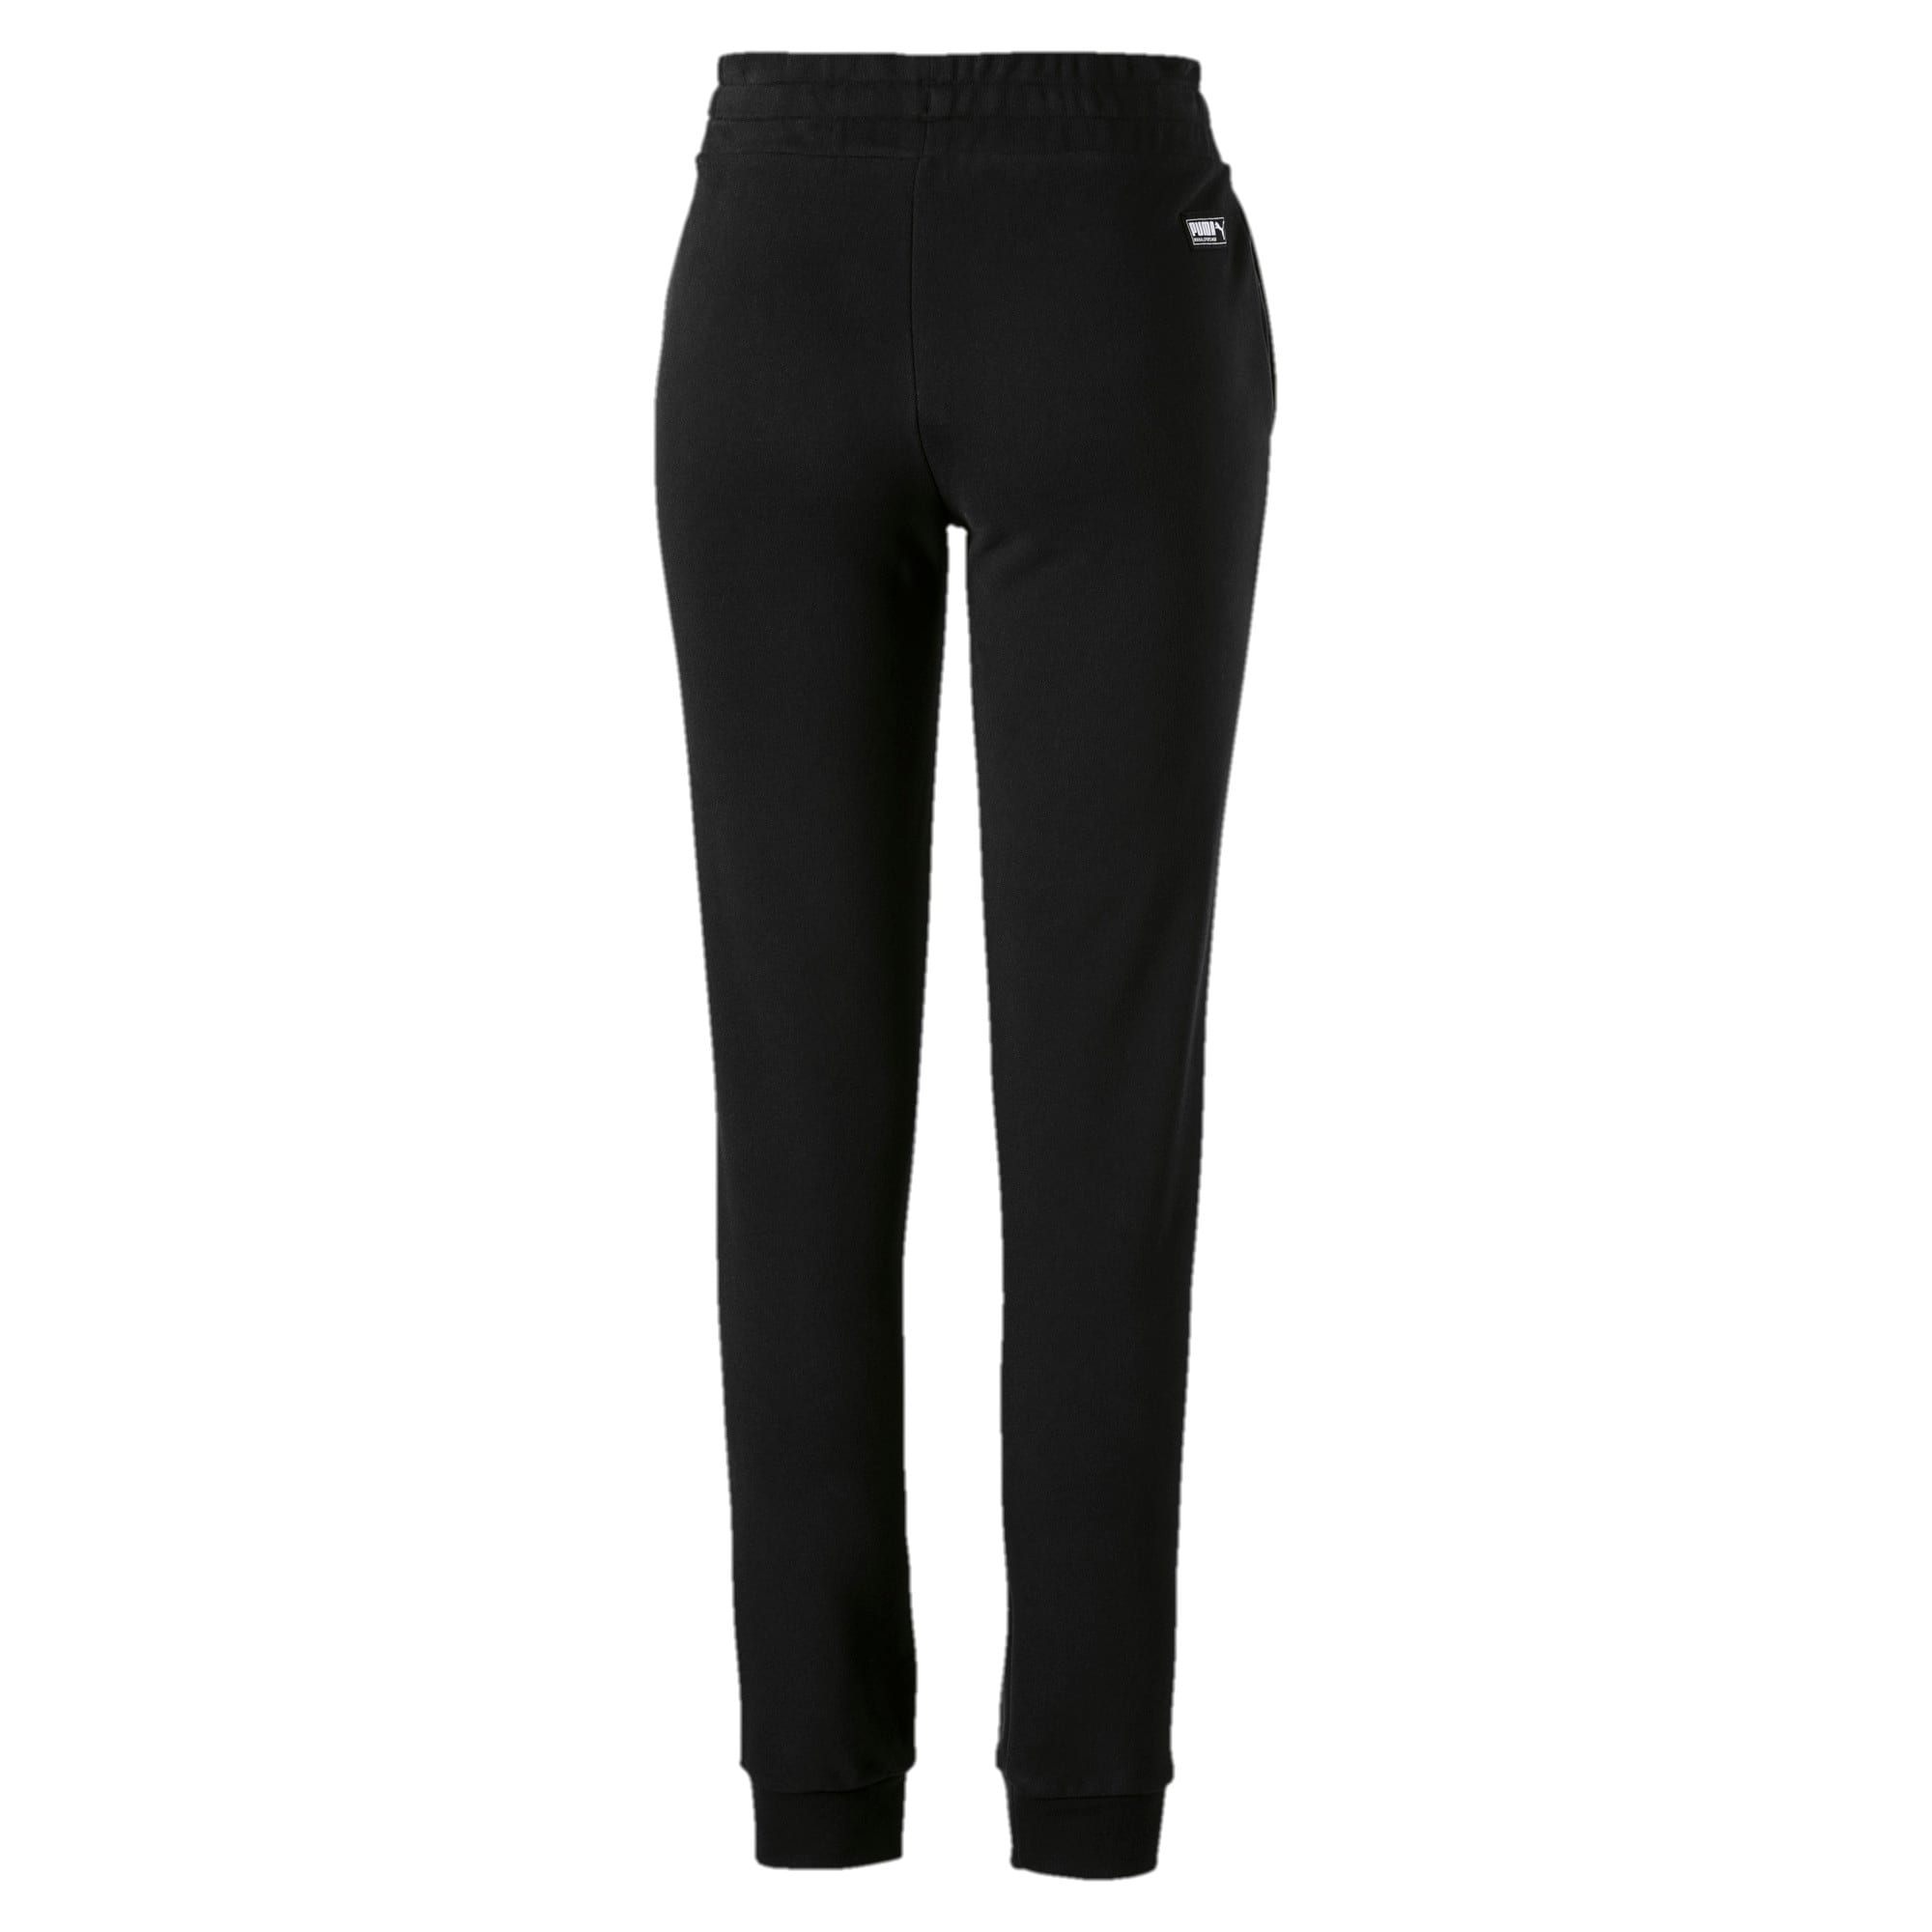 Athletics Women's Sweatpants, Cotton Black, large